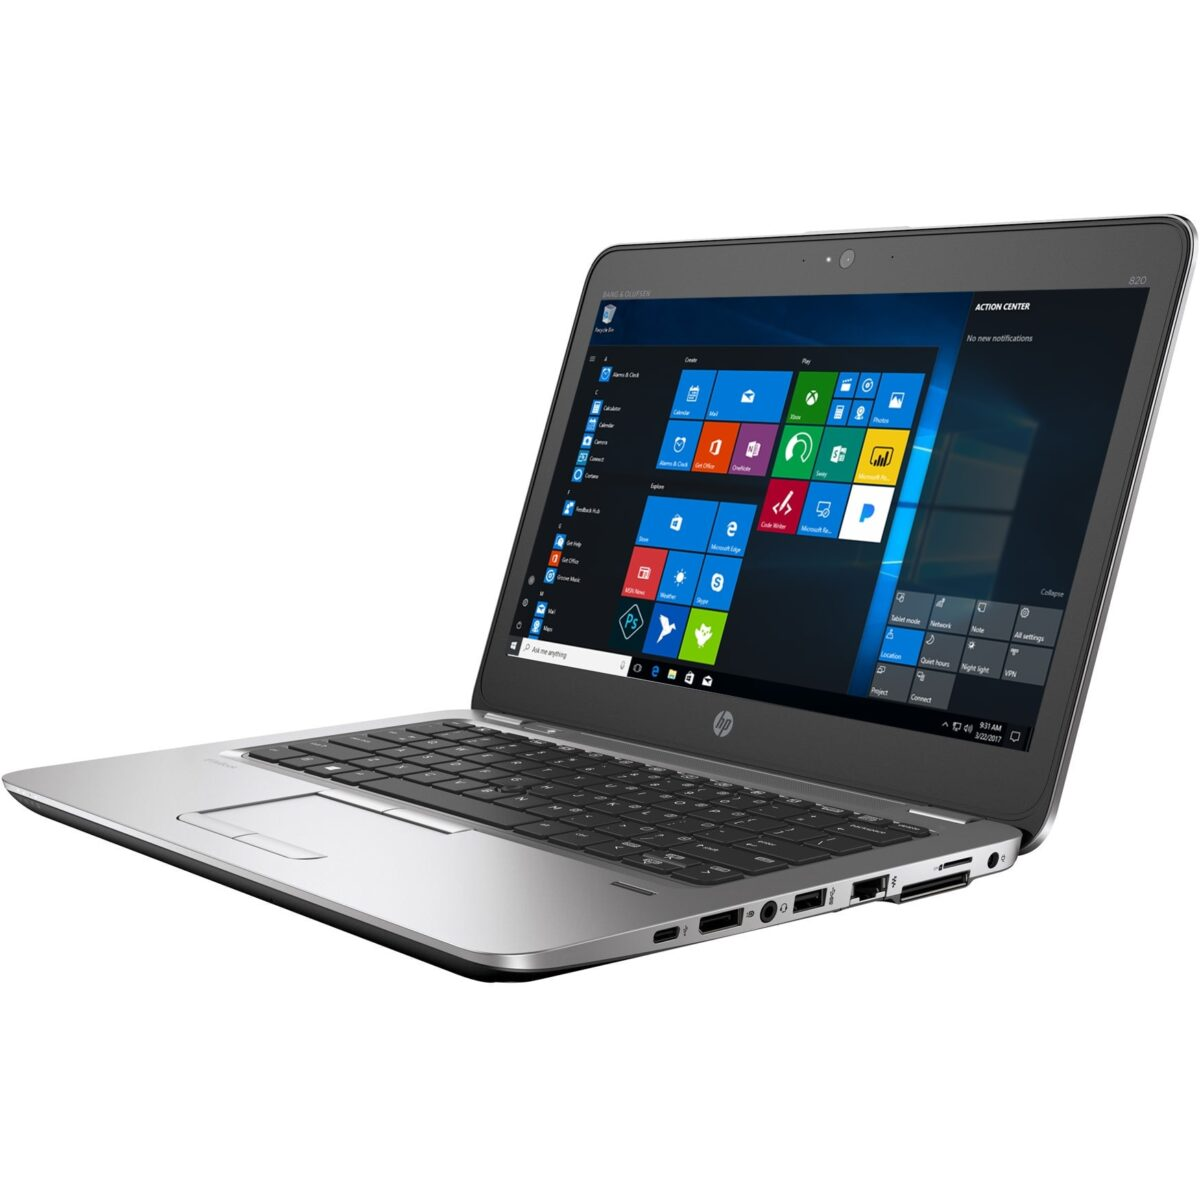 "HP Laptop Elitebook 256GB SSD 8GB RAM 820 G3 12.5"" Powerful Core i5 Windows 10 Sale"